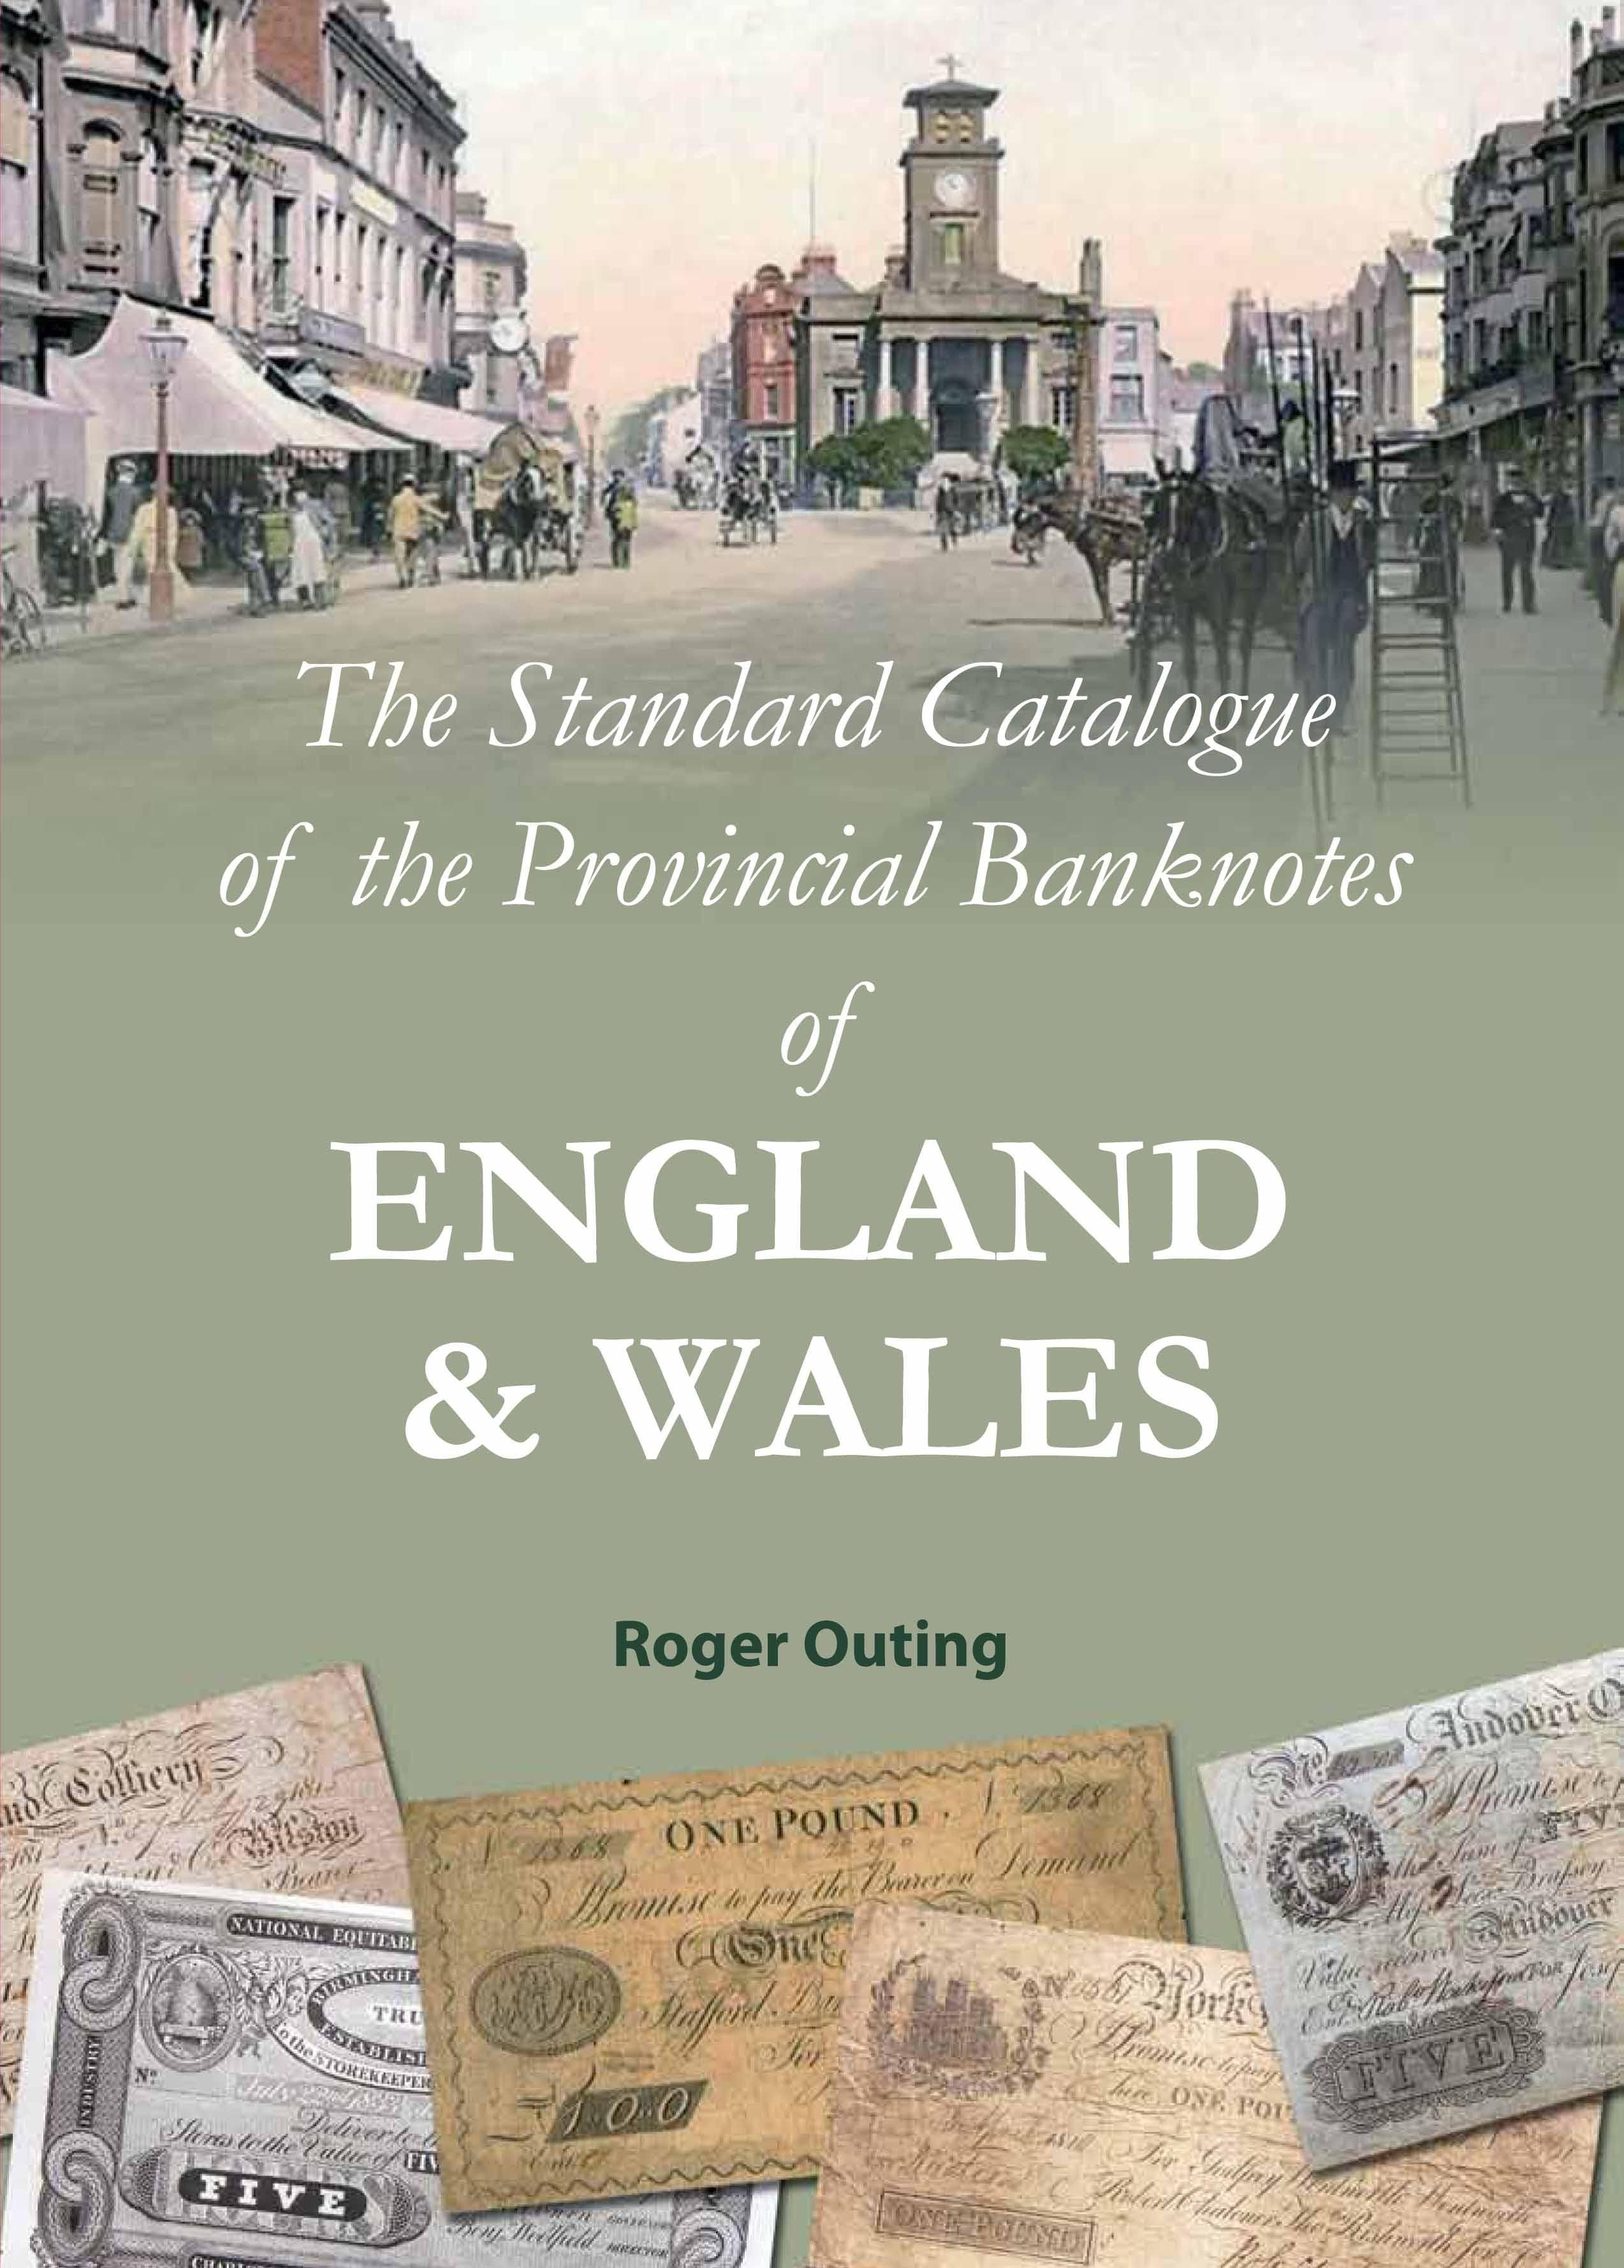 The Provincial Banknotes of England and Wales - Download in the Token Publishing Shop